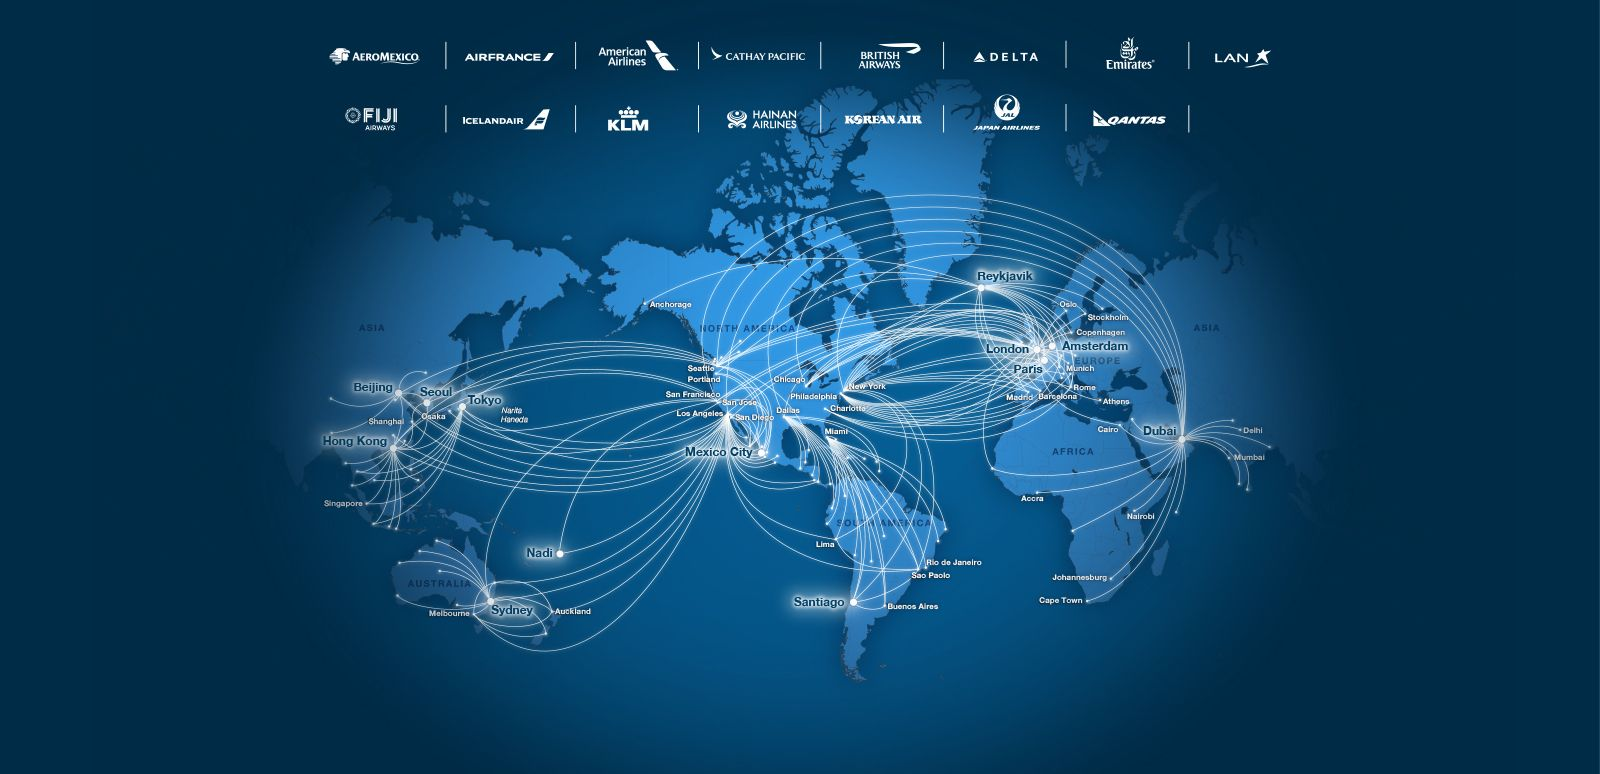 Alaska and virgin partners route map aeromexico airfrance alaska and virgin partners route map aeromexico airfrance american airlines cathay pacific gumiabroncs Images